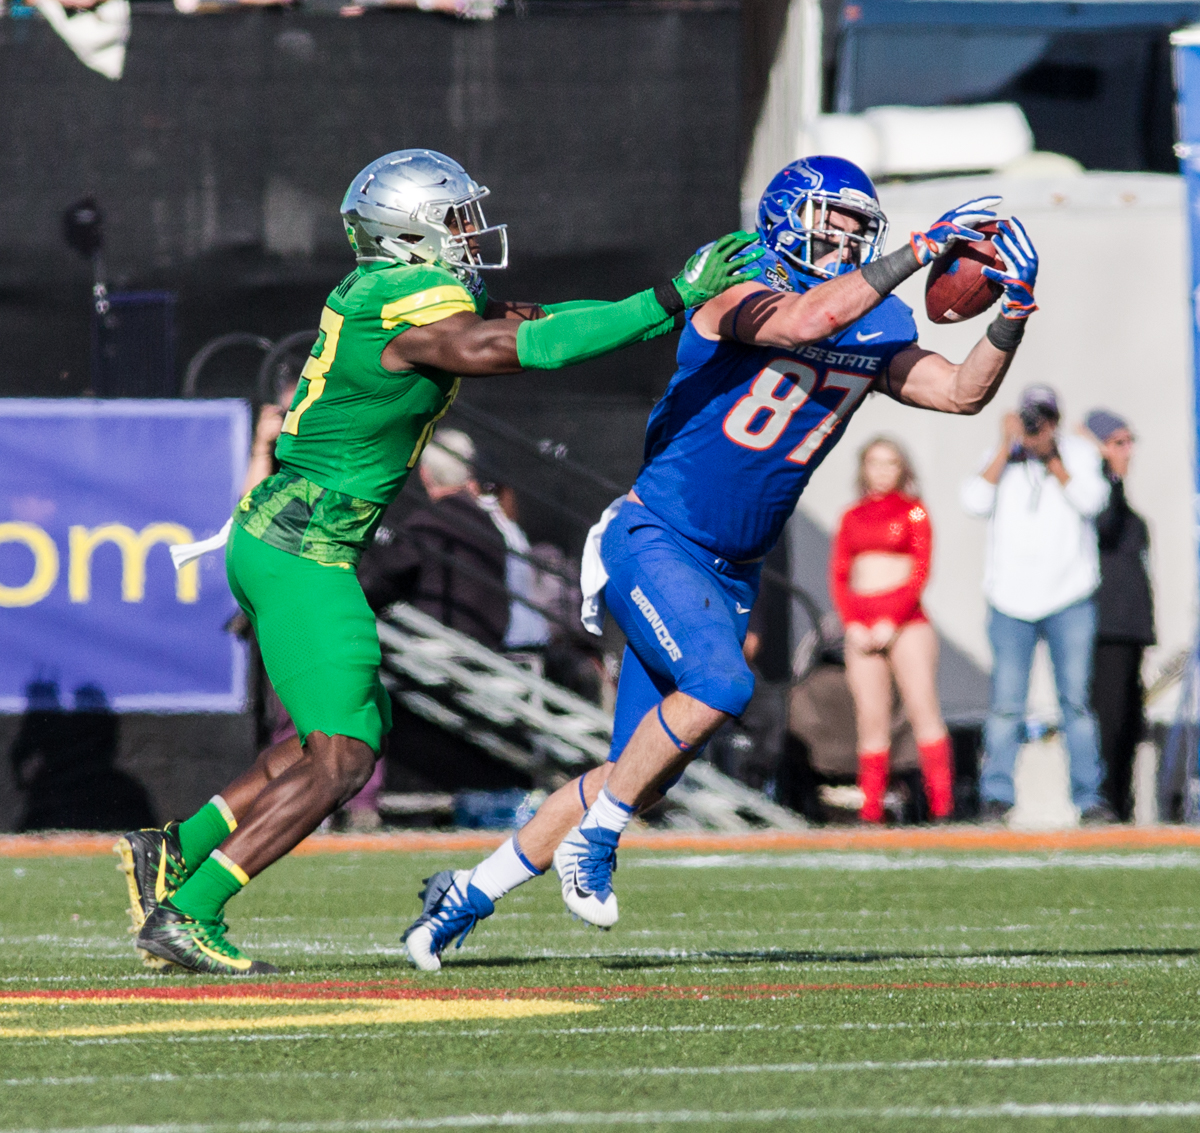 Boise State tight end Alec Dhaenens (#87) catches a pass. The Boise State Broncos defeated the Oregon Ducks 38 to 28 in the 2017 Las Vegas Bowl at Sam Boyd Stadium in Las Vegas, Nevada on Saturday December 17, 2017. The Las Vegas Bowl served as the first test for Oregon's new Head Coach Mario Cristobal following the loss of former Head Coach Willie Taggart to Florida State University earlier this month. Photo by Ben Lonergan, Oregon News Lab